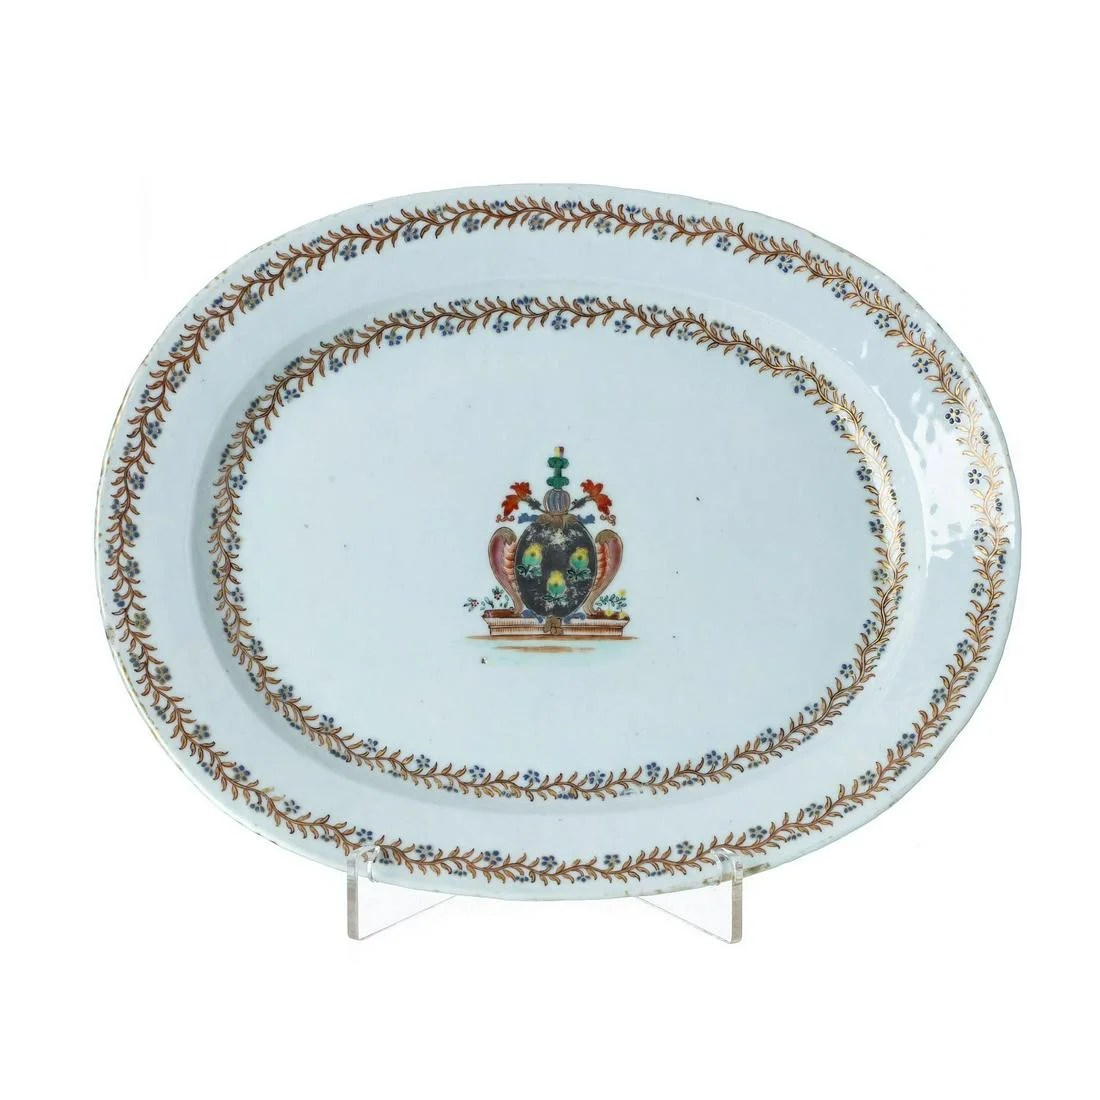 Chinese export Armorial platter, Jiaqing